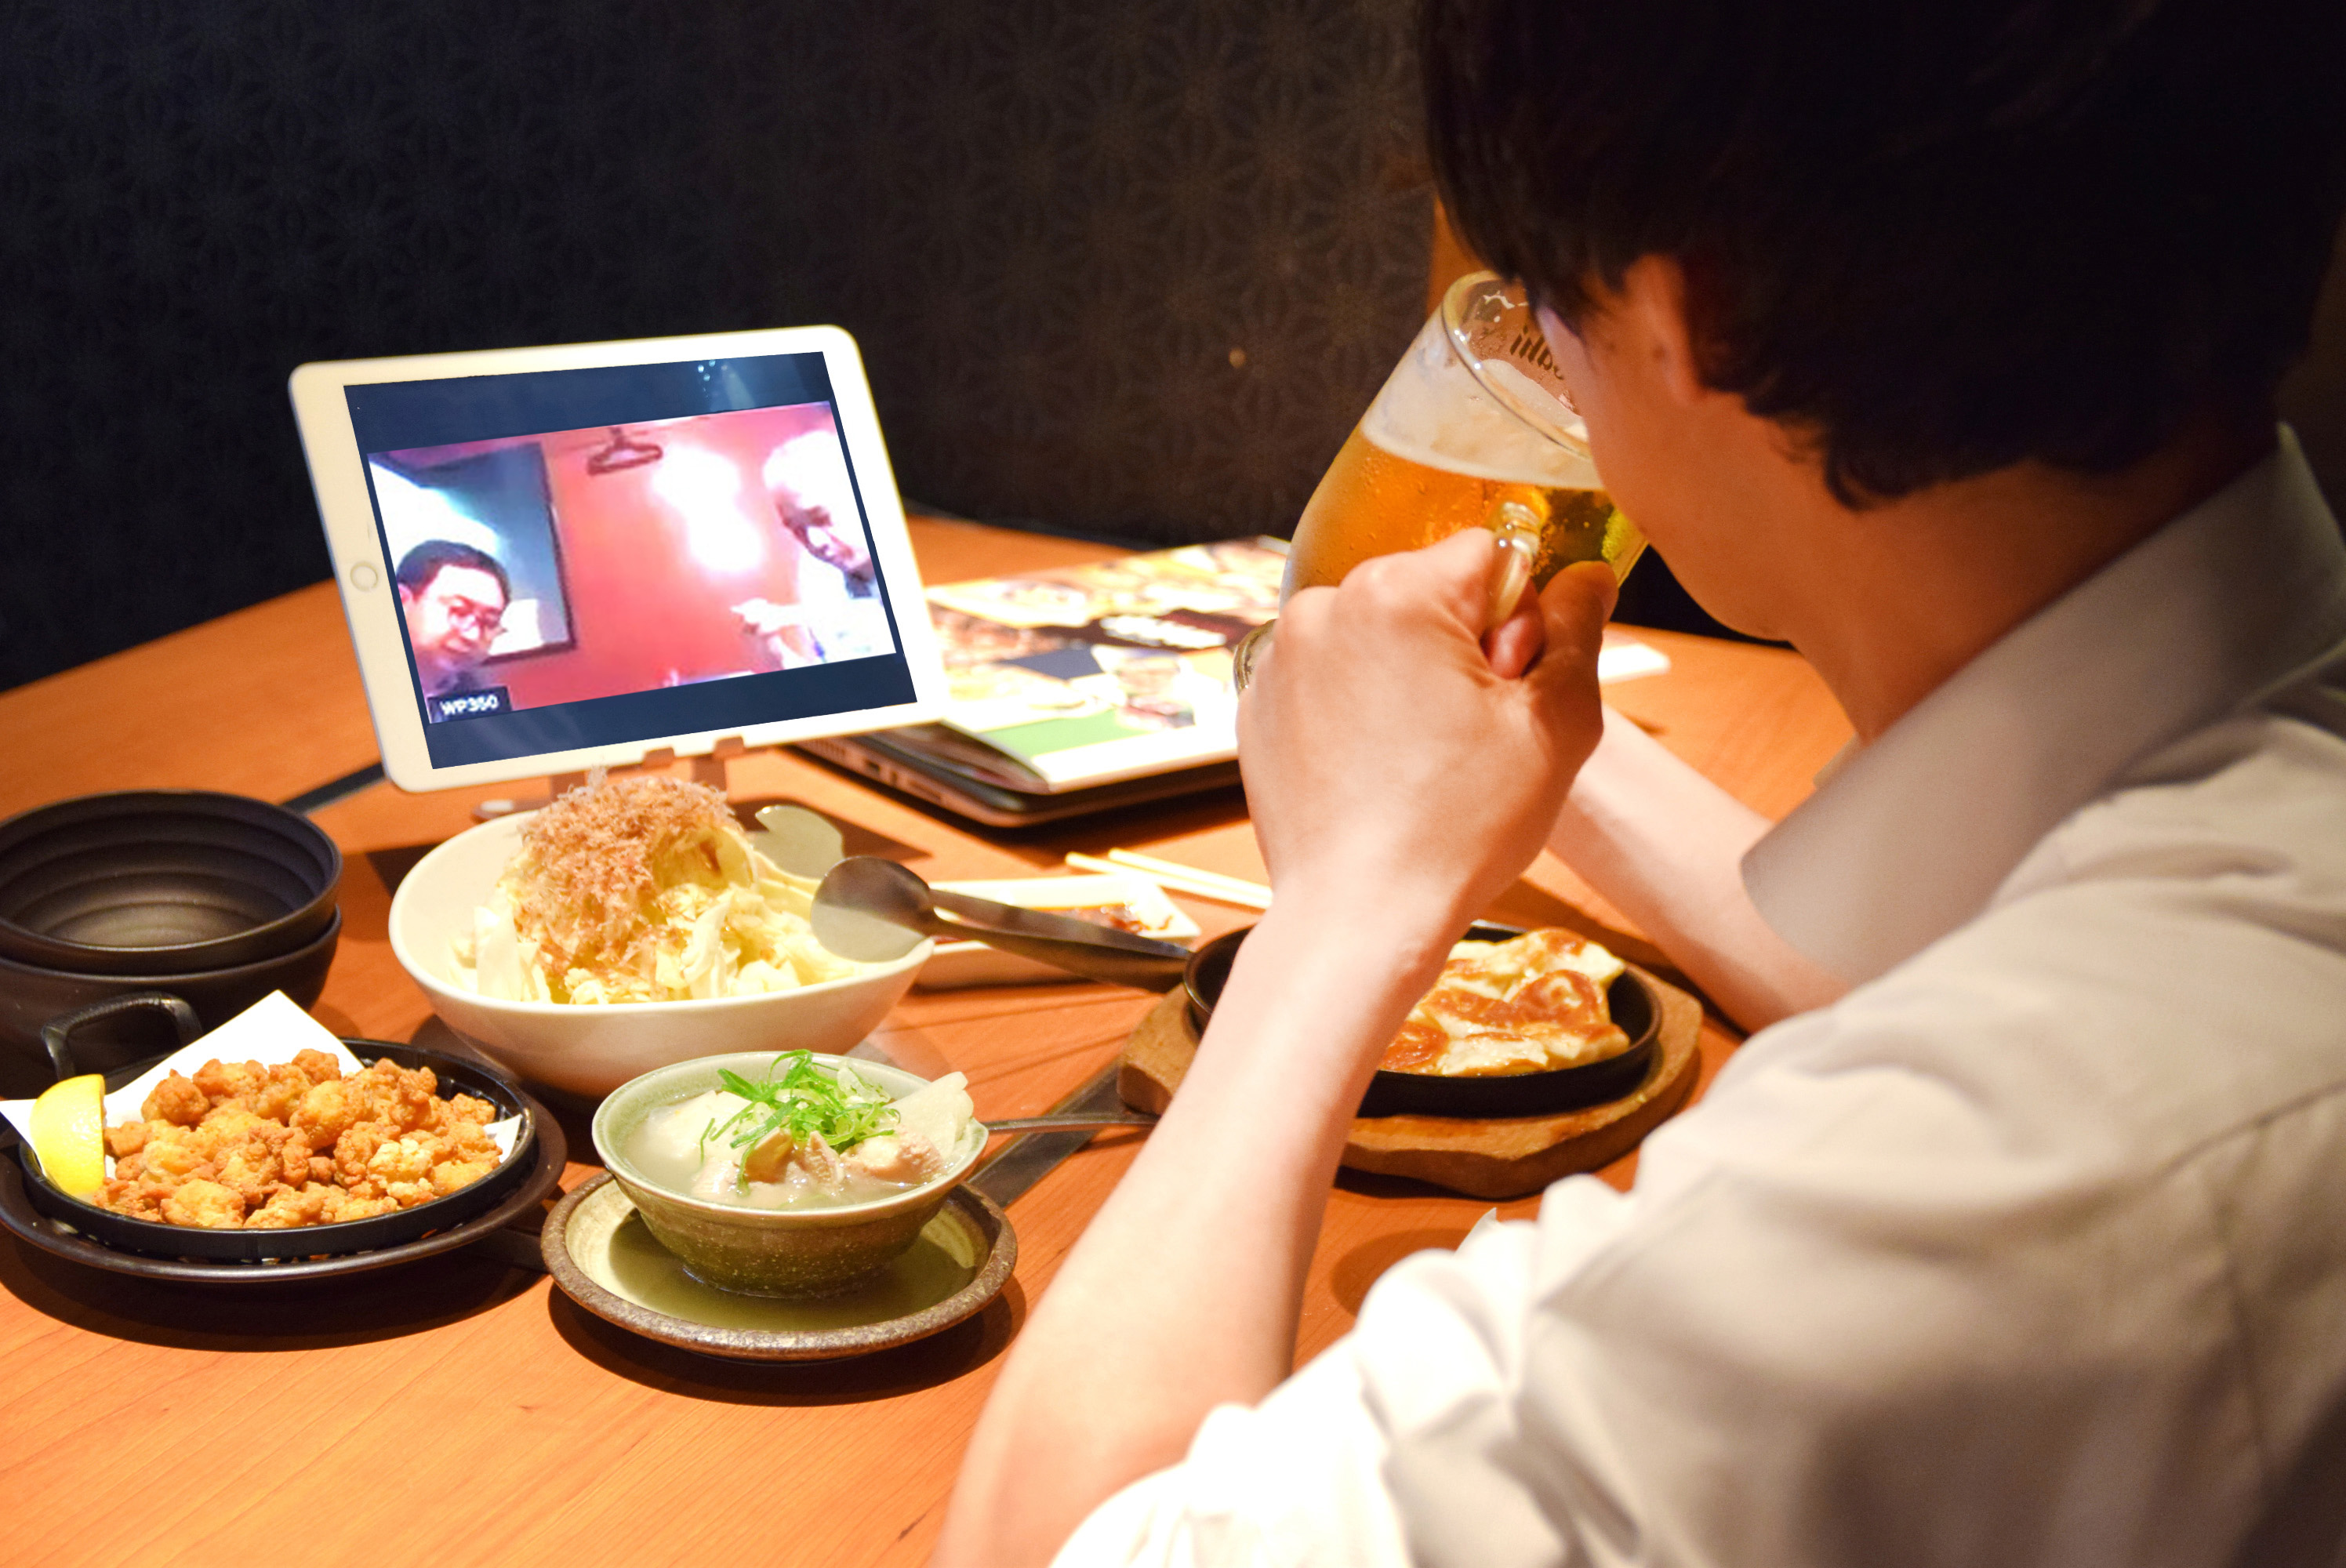 The CW Company, which develops izakaya such as Amataro, has set up a remote seat to connect drinking parties in [Tokyo-Osaka].